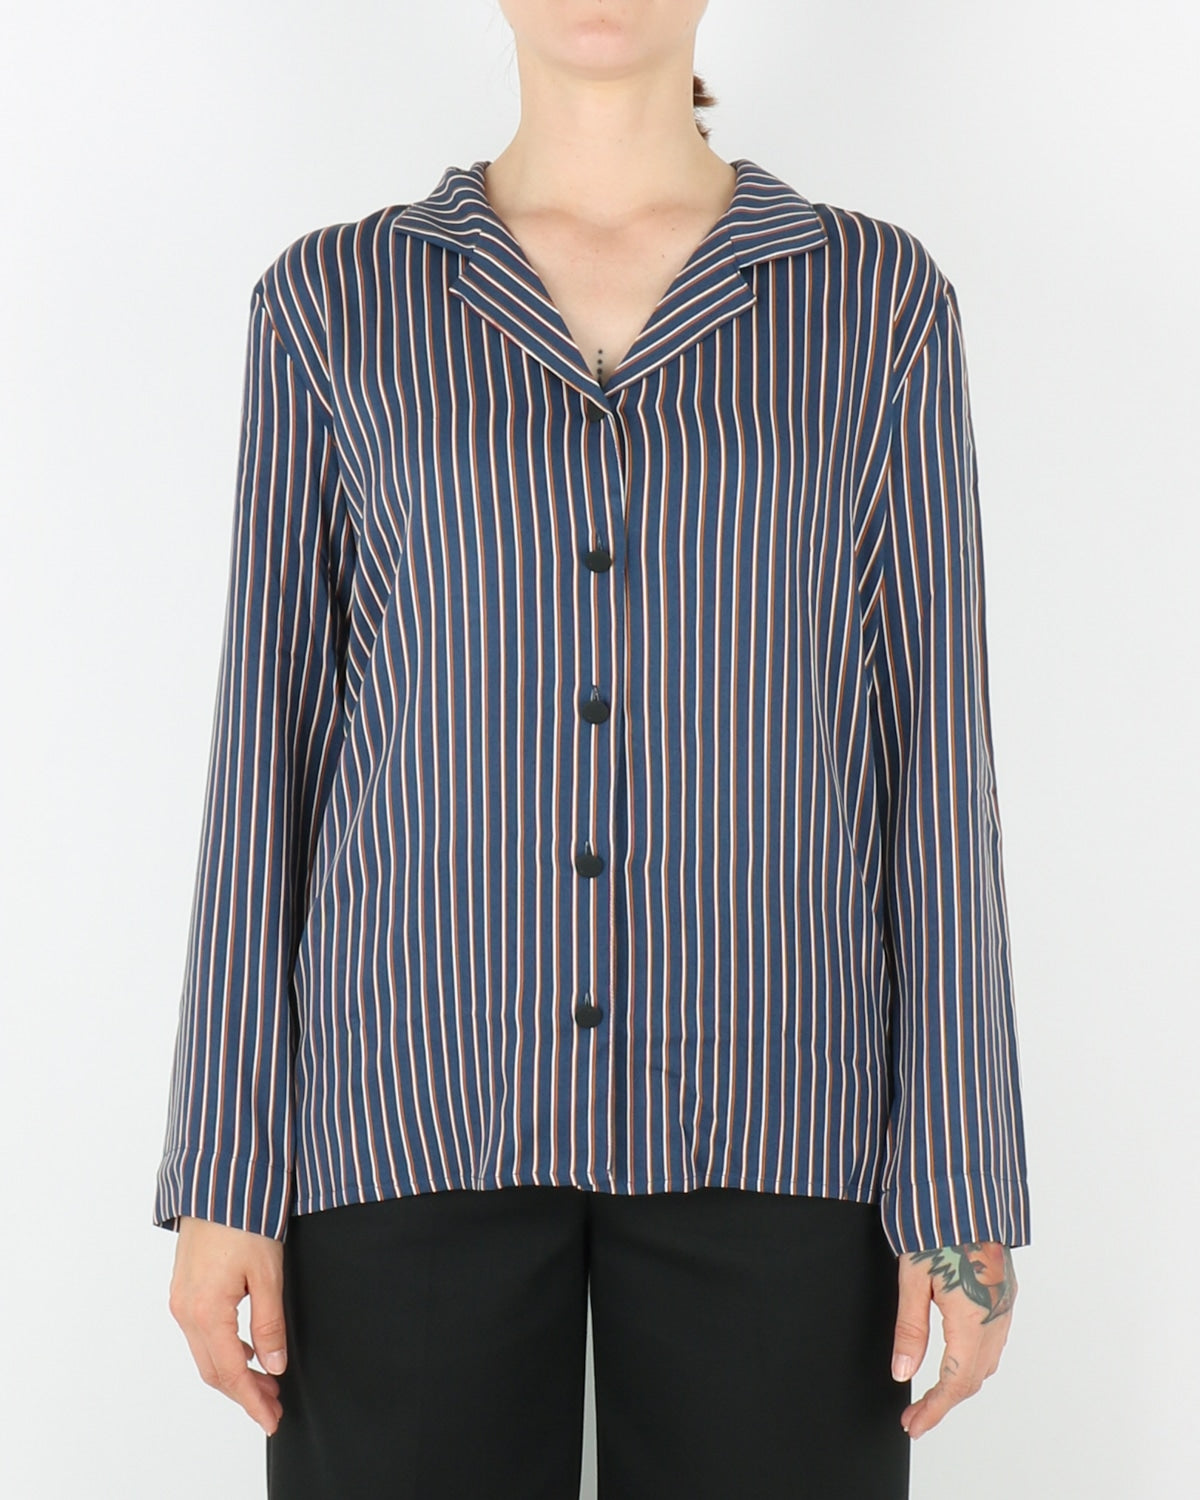 libertine libertine_page shirt_navy_view_1_3